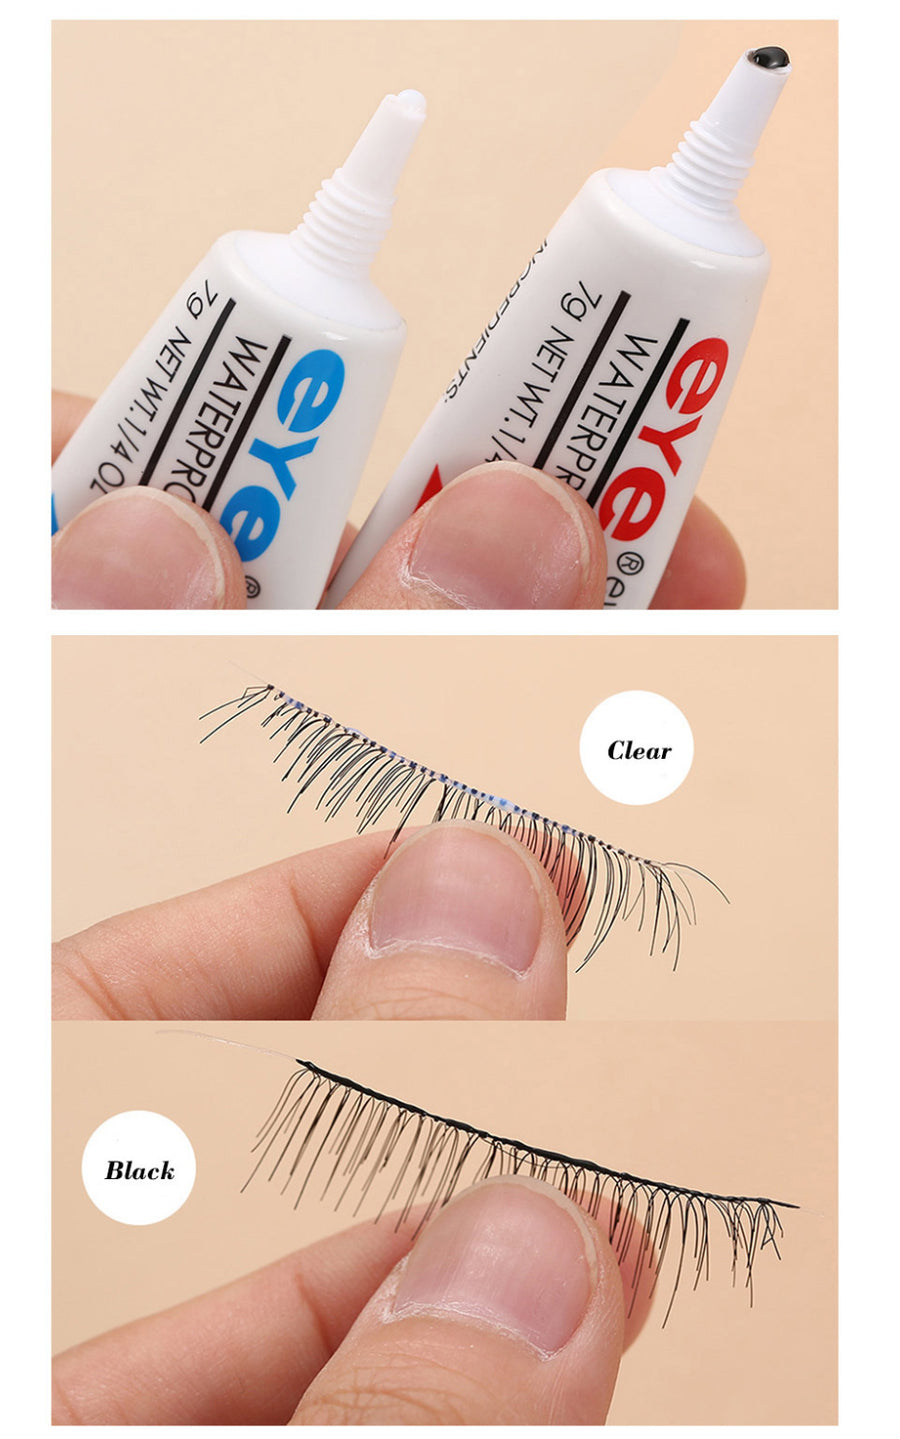 6 Pcs Waterproof Eyelash Glue